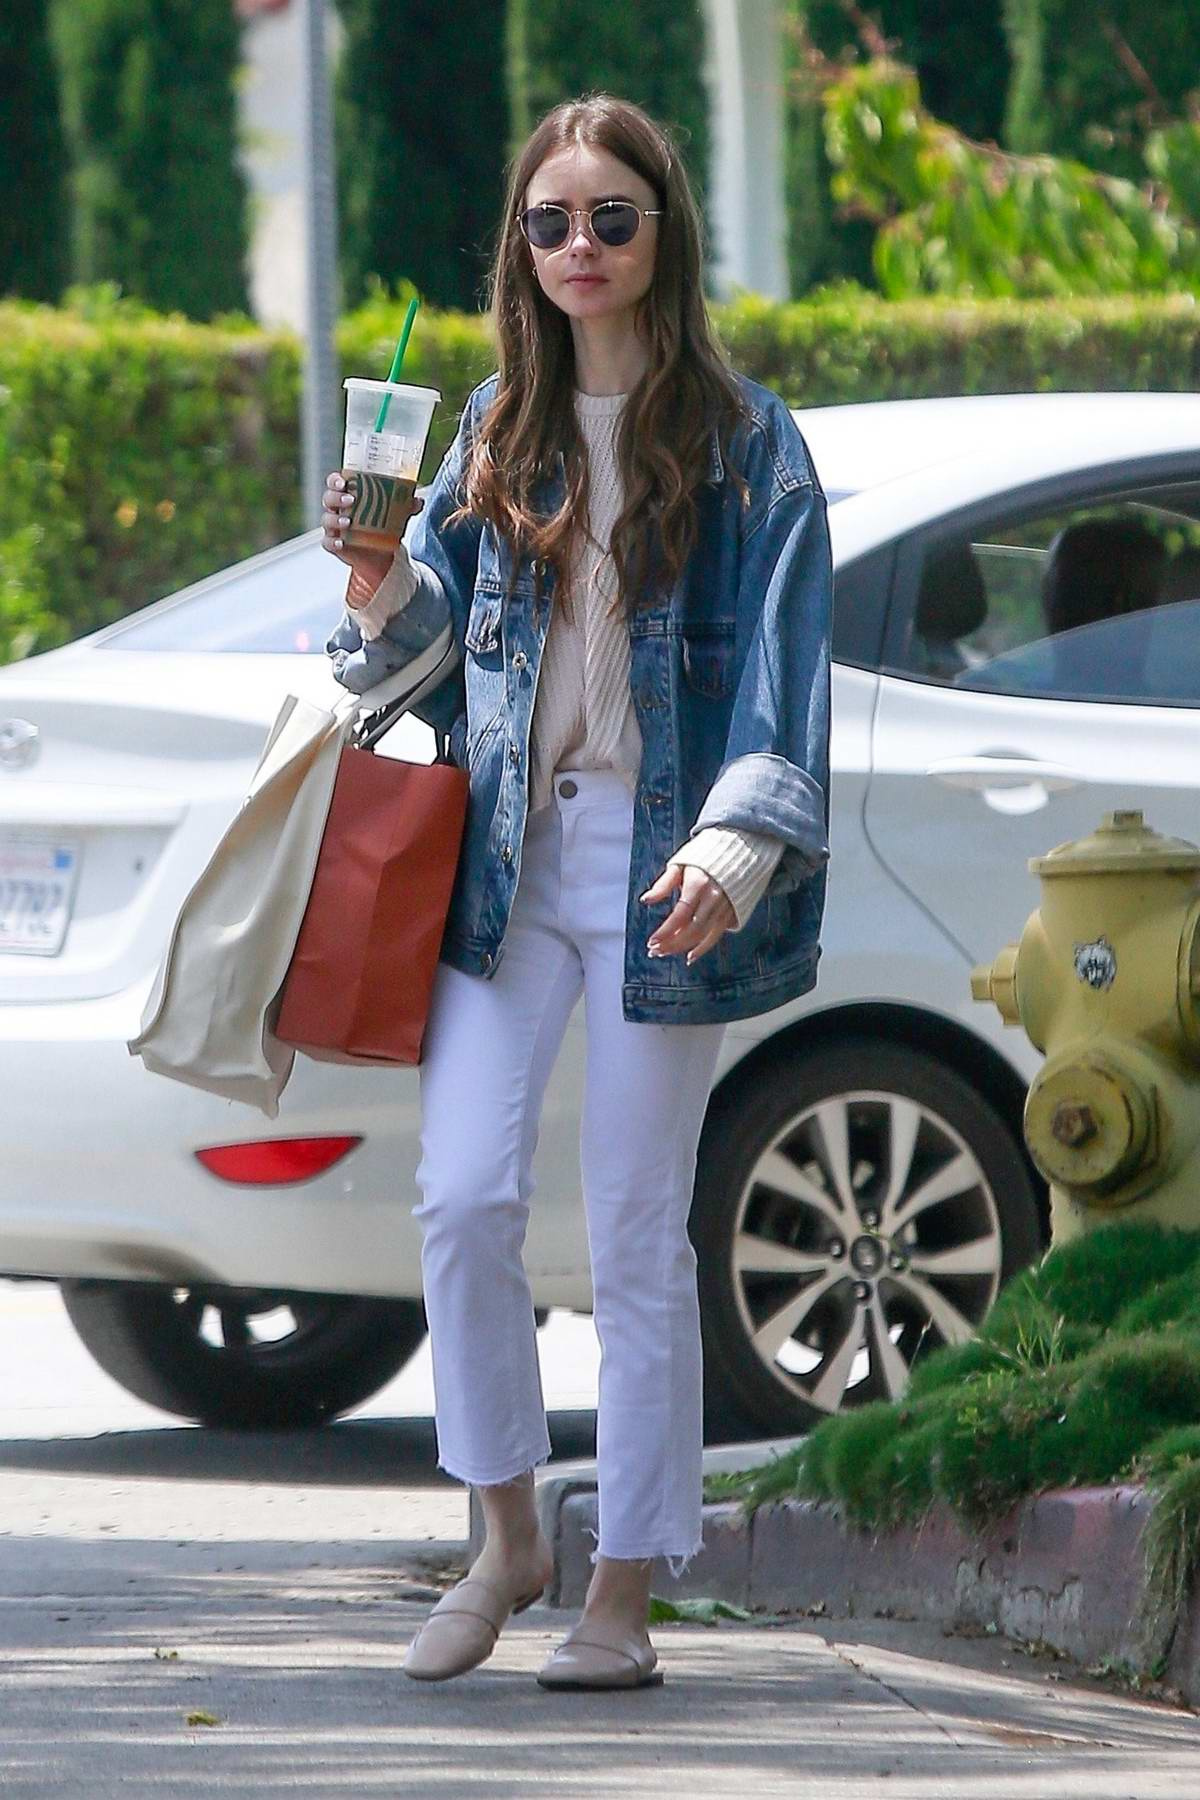 Lily Collins sports double denim as she steps out for some shopping in Los Angeles